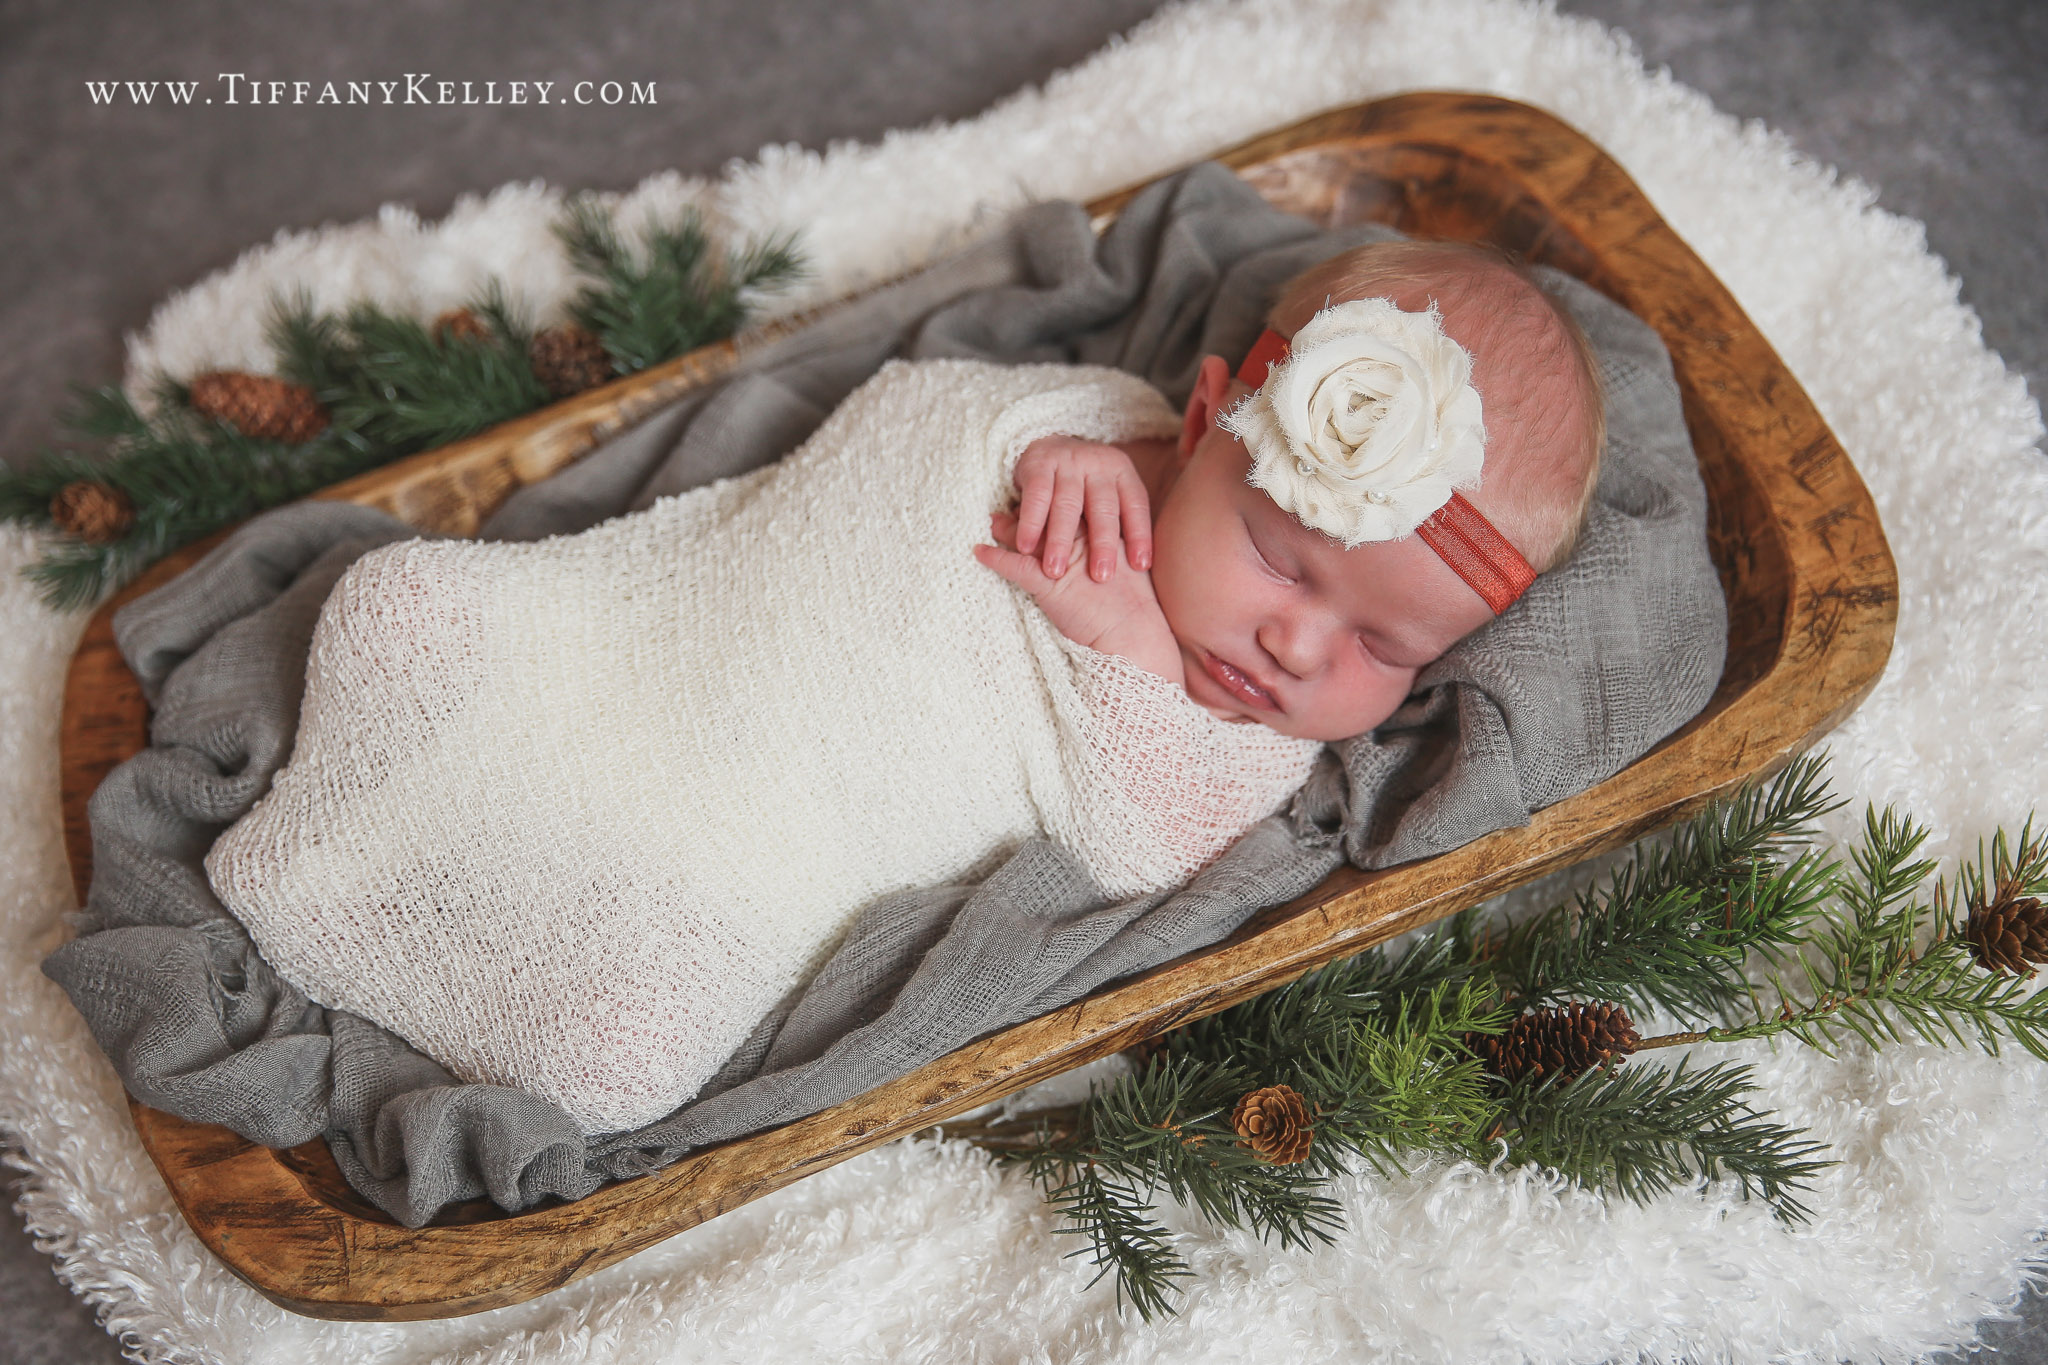 Evelyn Branson Springfield MO Newborn Photographer Tiffany Kelley Photography